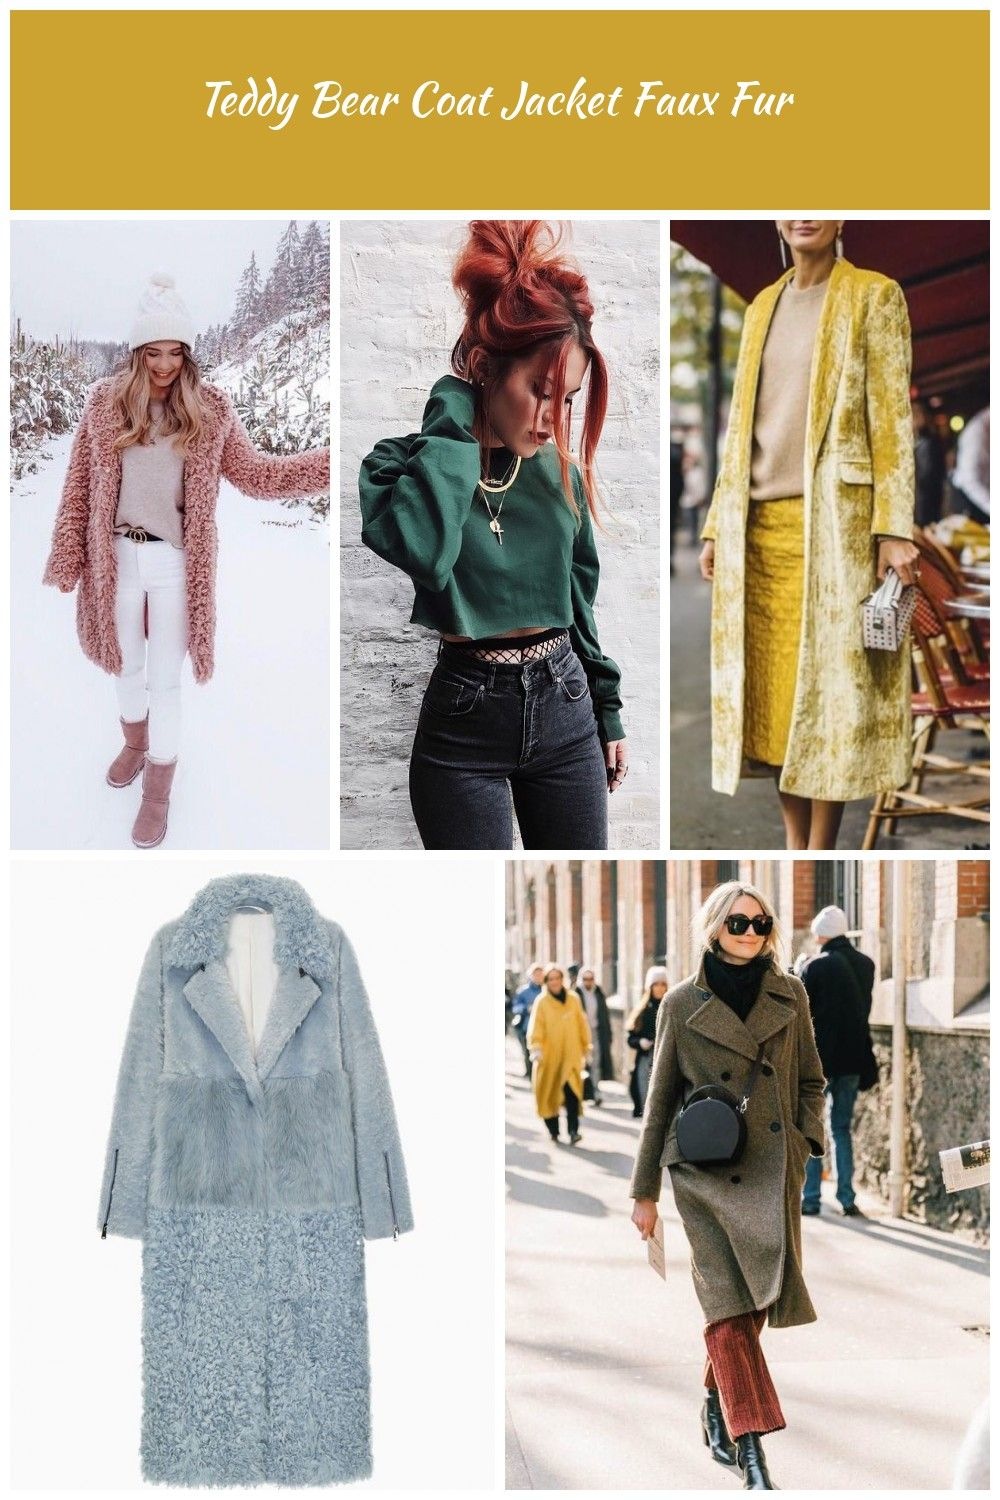 Gray sweater  white tight pants  ankle boots  pink teddy coat Fashion classy casual warm comfy long coat women fall winter winter fashion Teddy Bear Coat Jacket Faux Fur